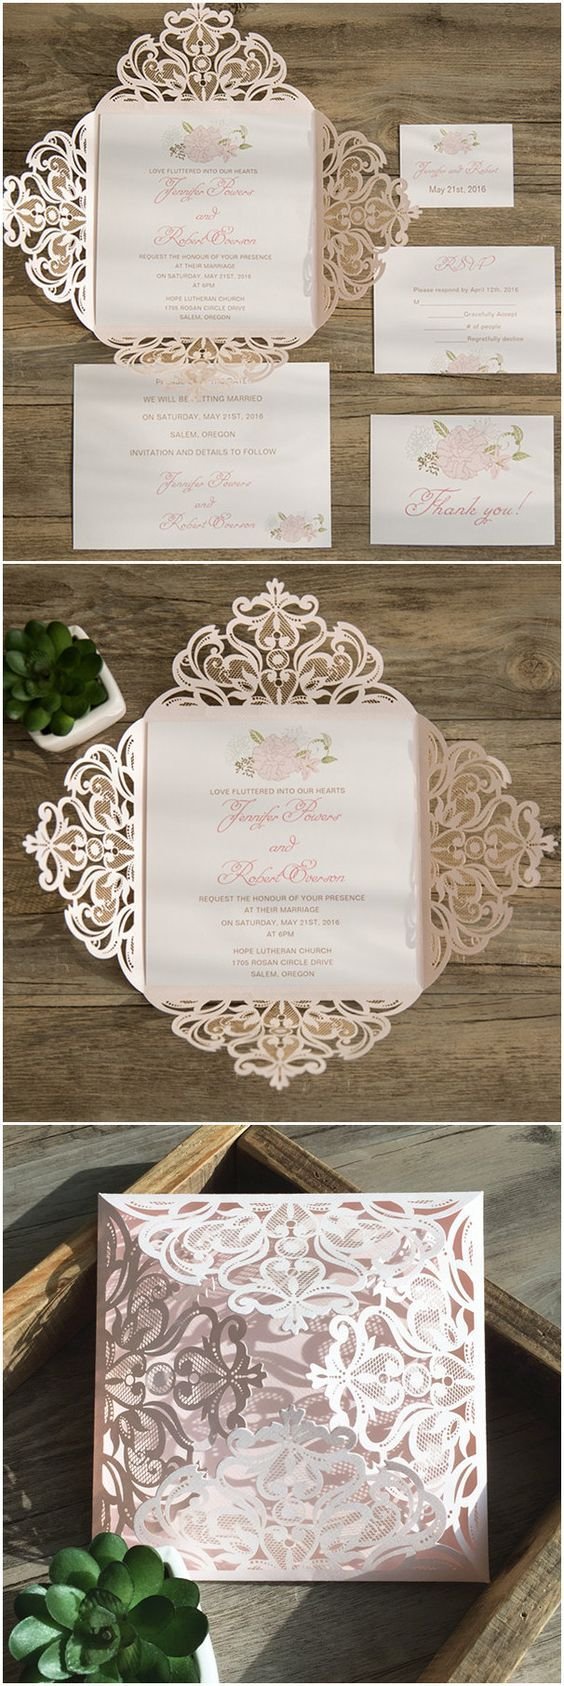 Laser cut elegant design on peach white